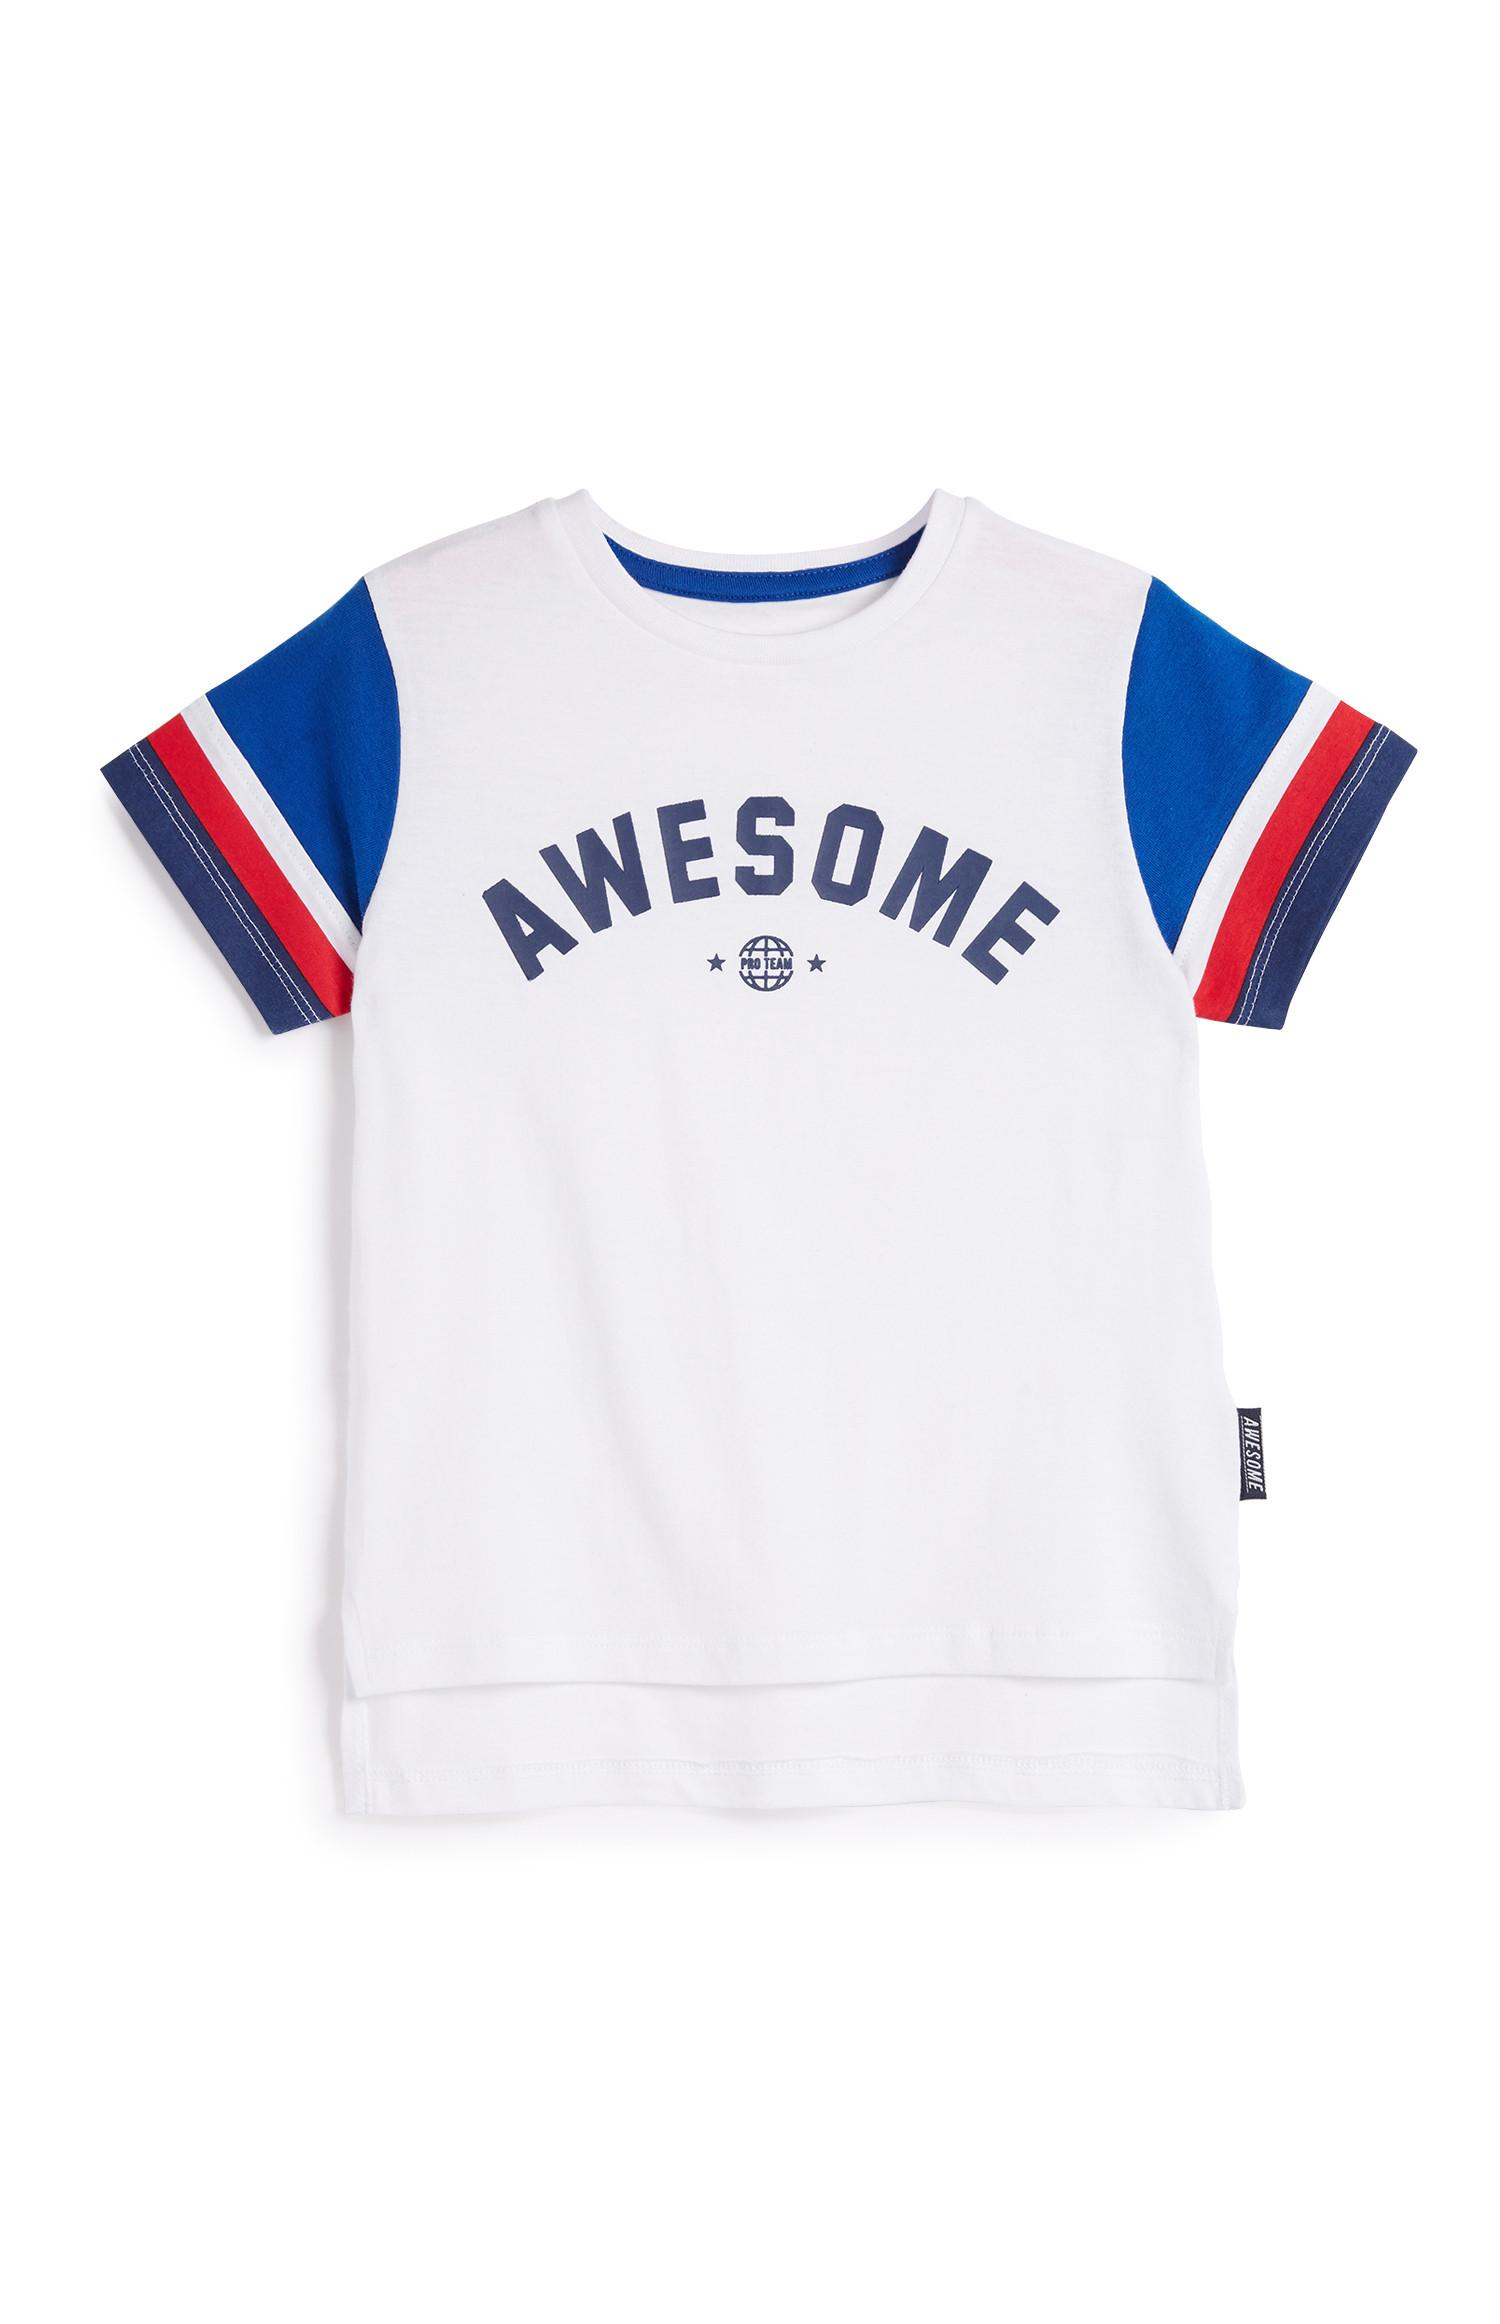 Younger Boy Awesome T-Shirt